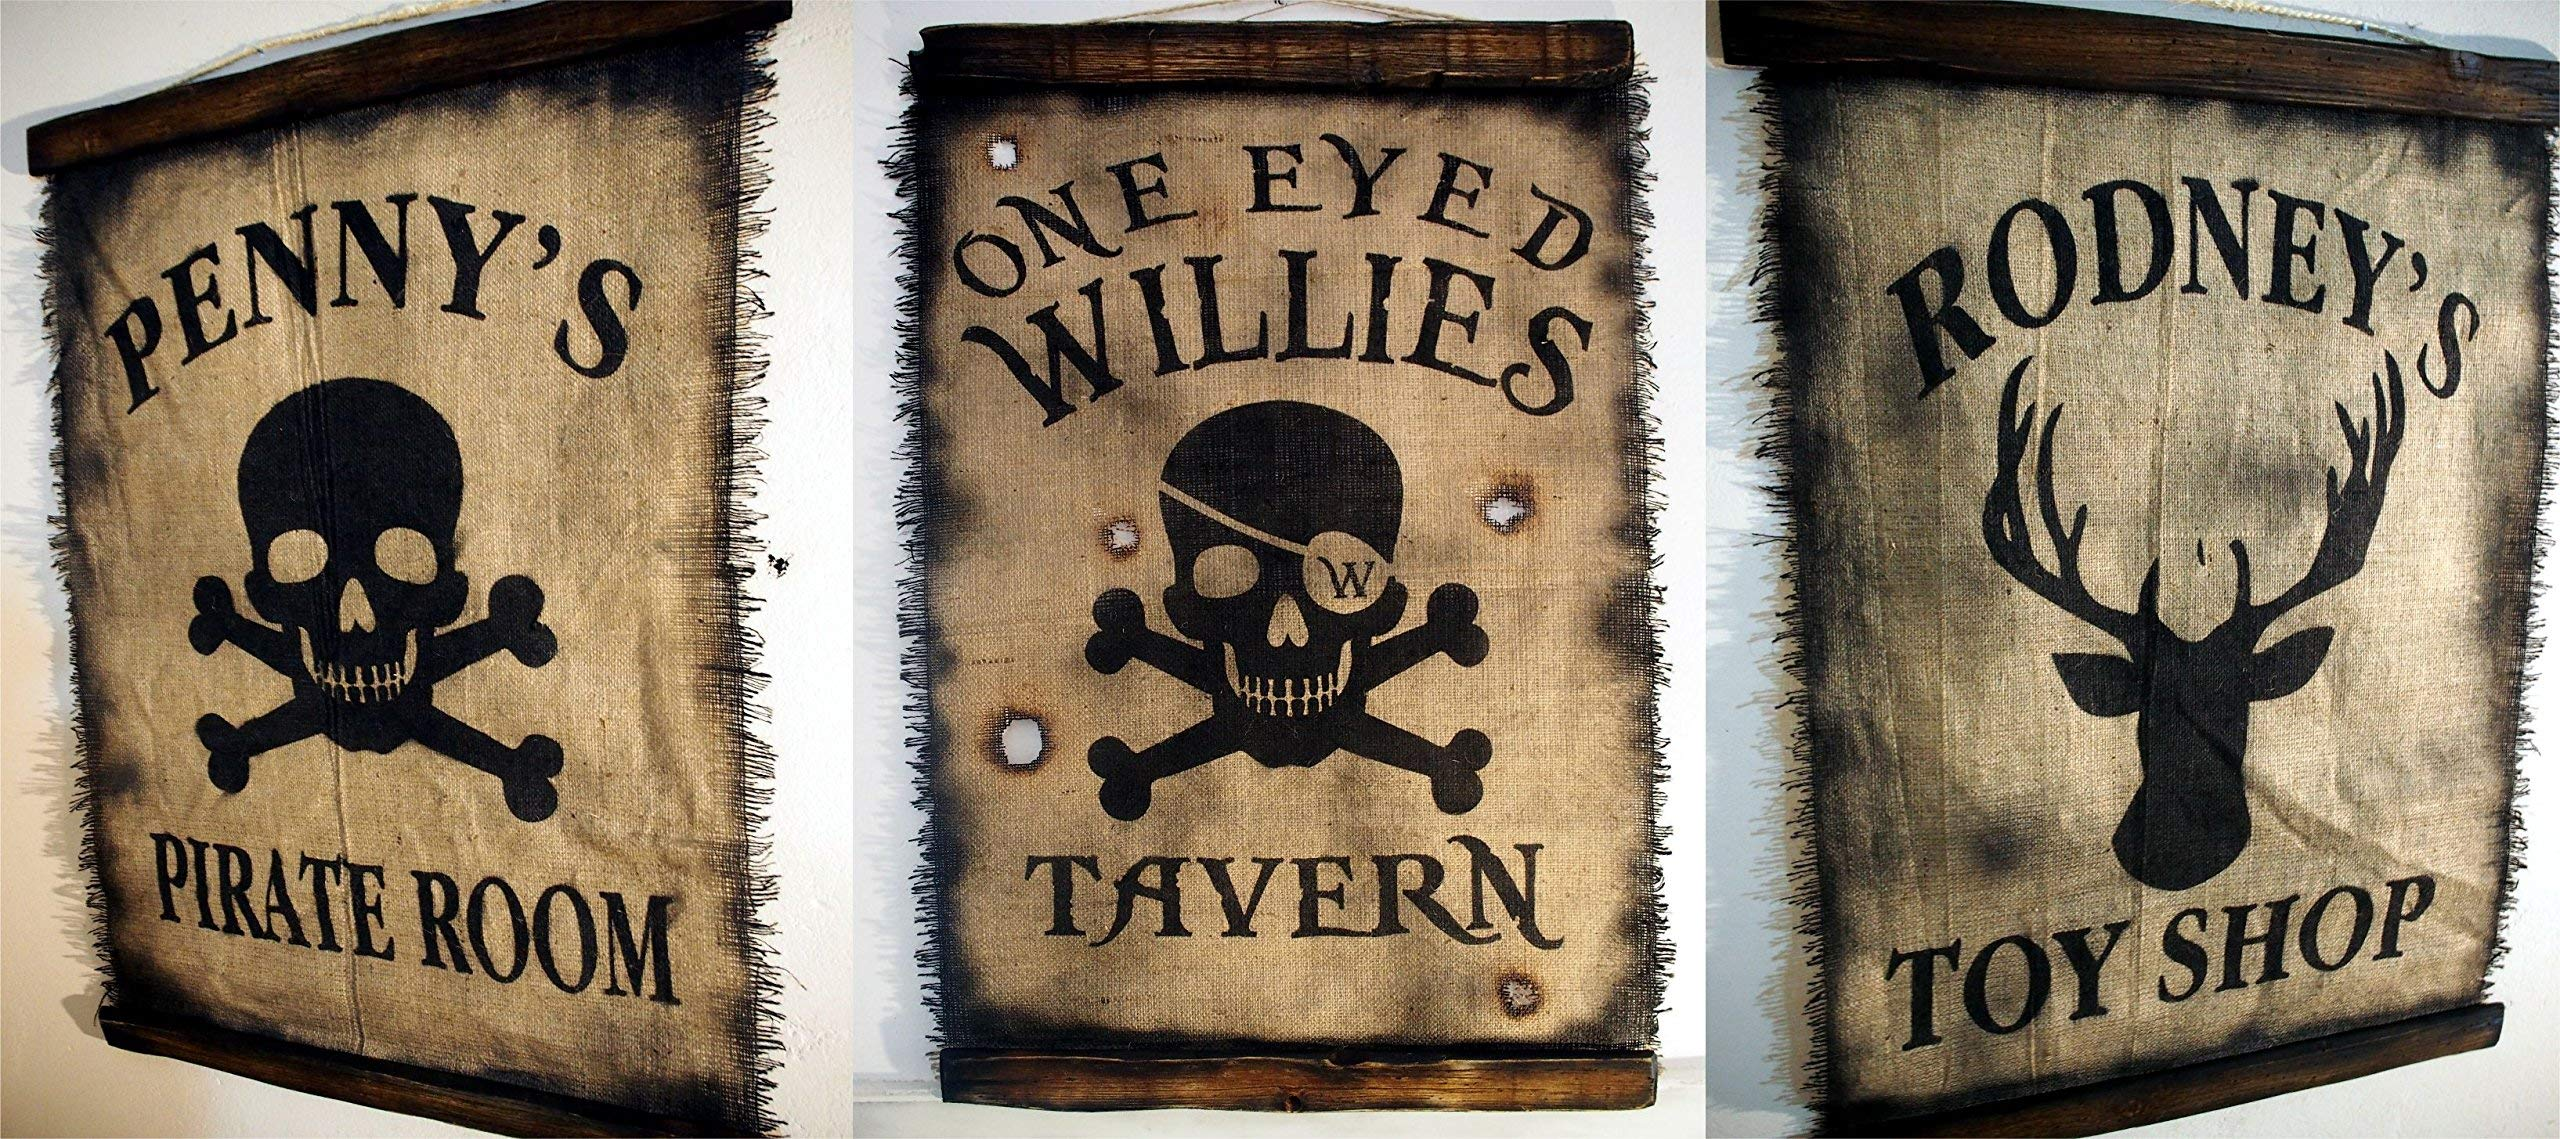 Custom Flag wall decor made of worn out burlap and wood | Rustic Decor | Pirate flag Wall art | Personalized Gift | Man Cave, Home Bar, Boys Room